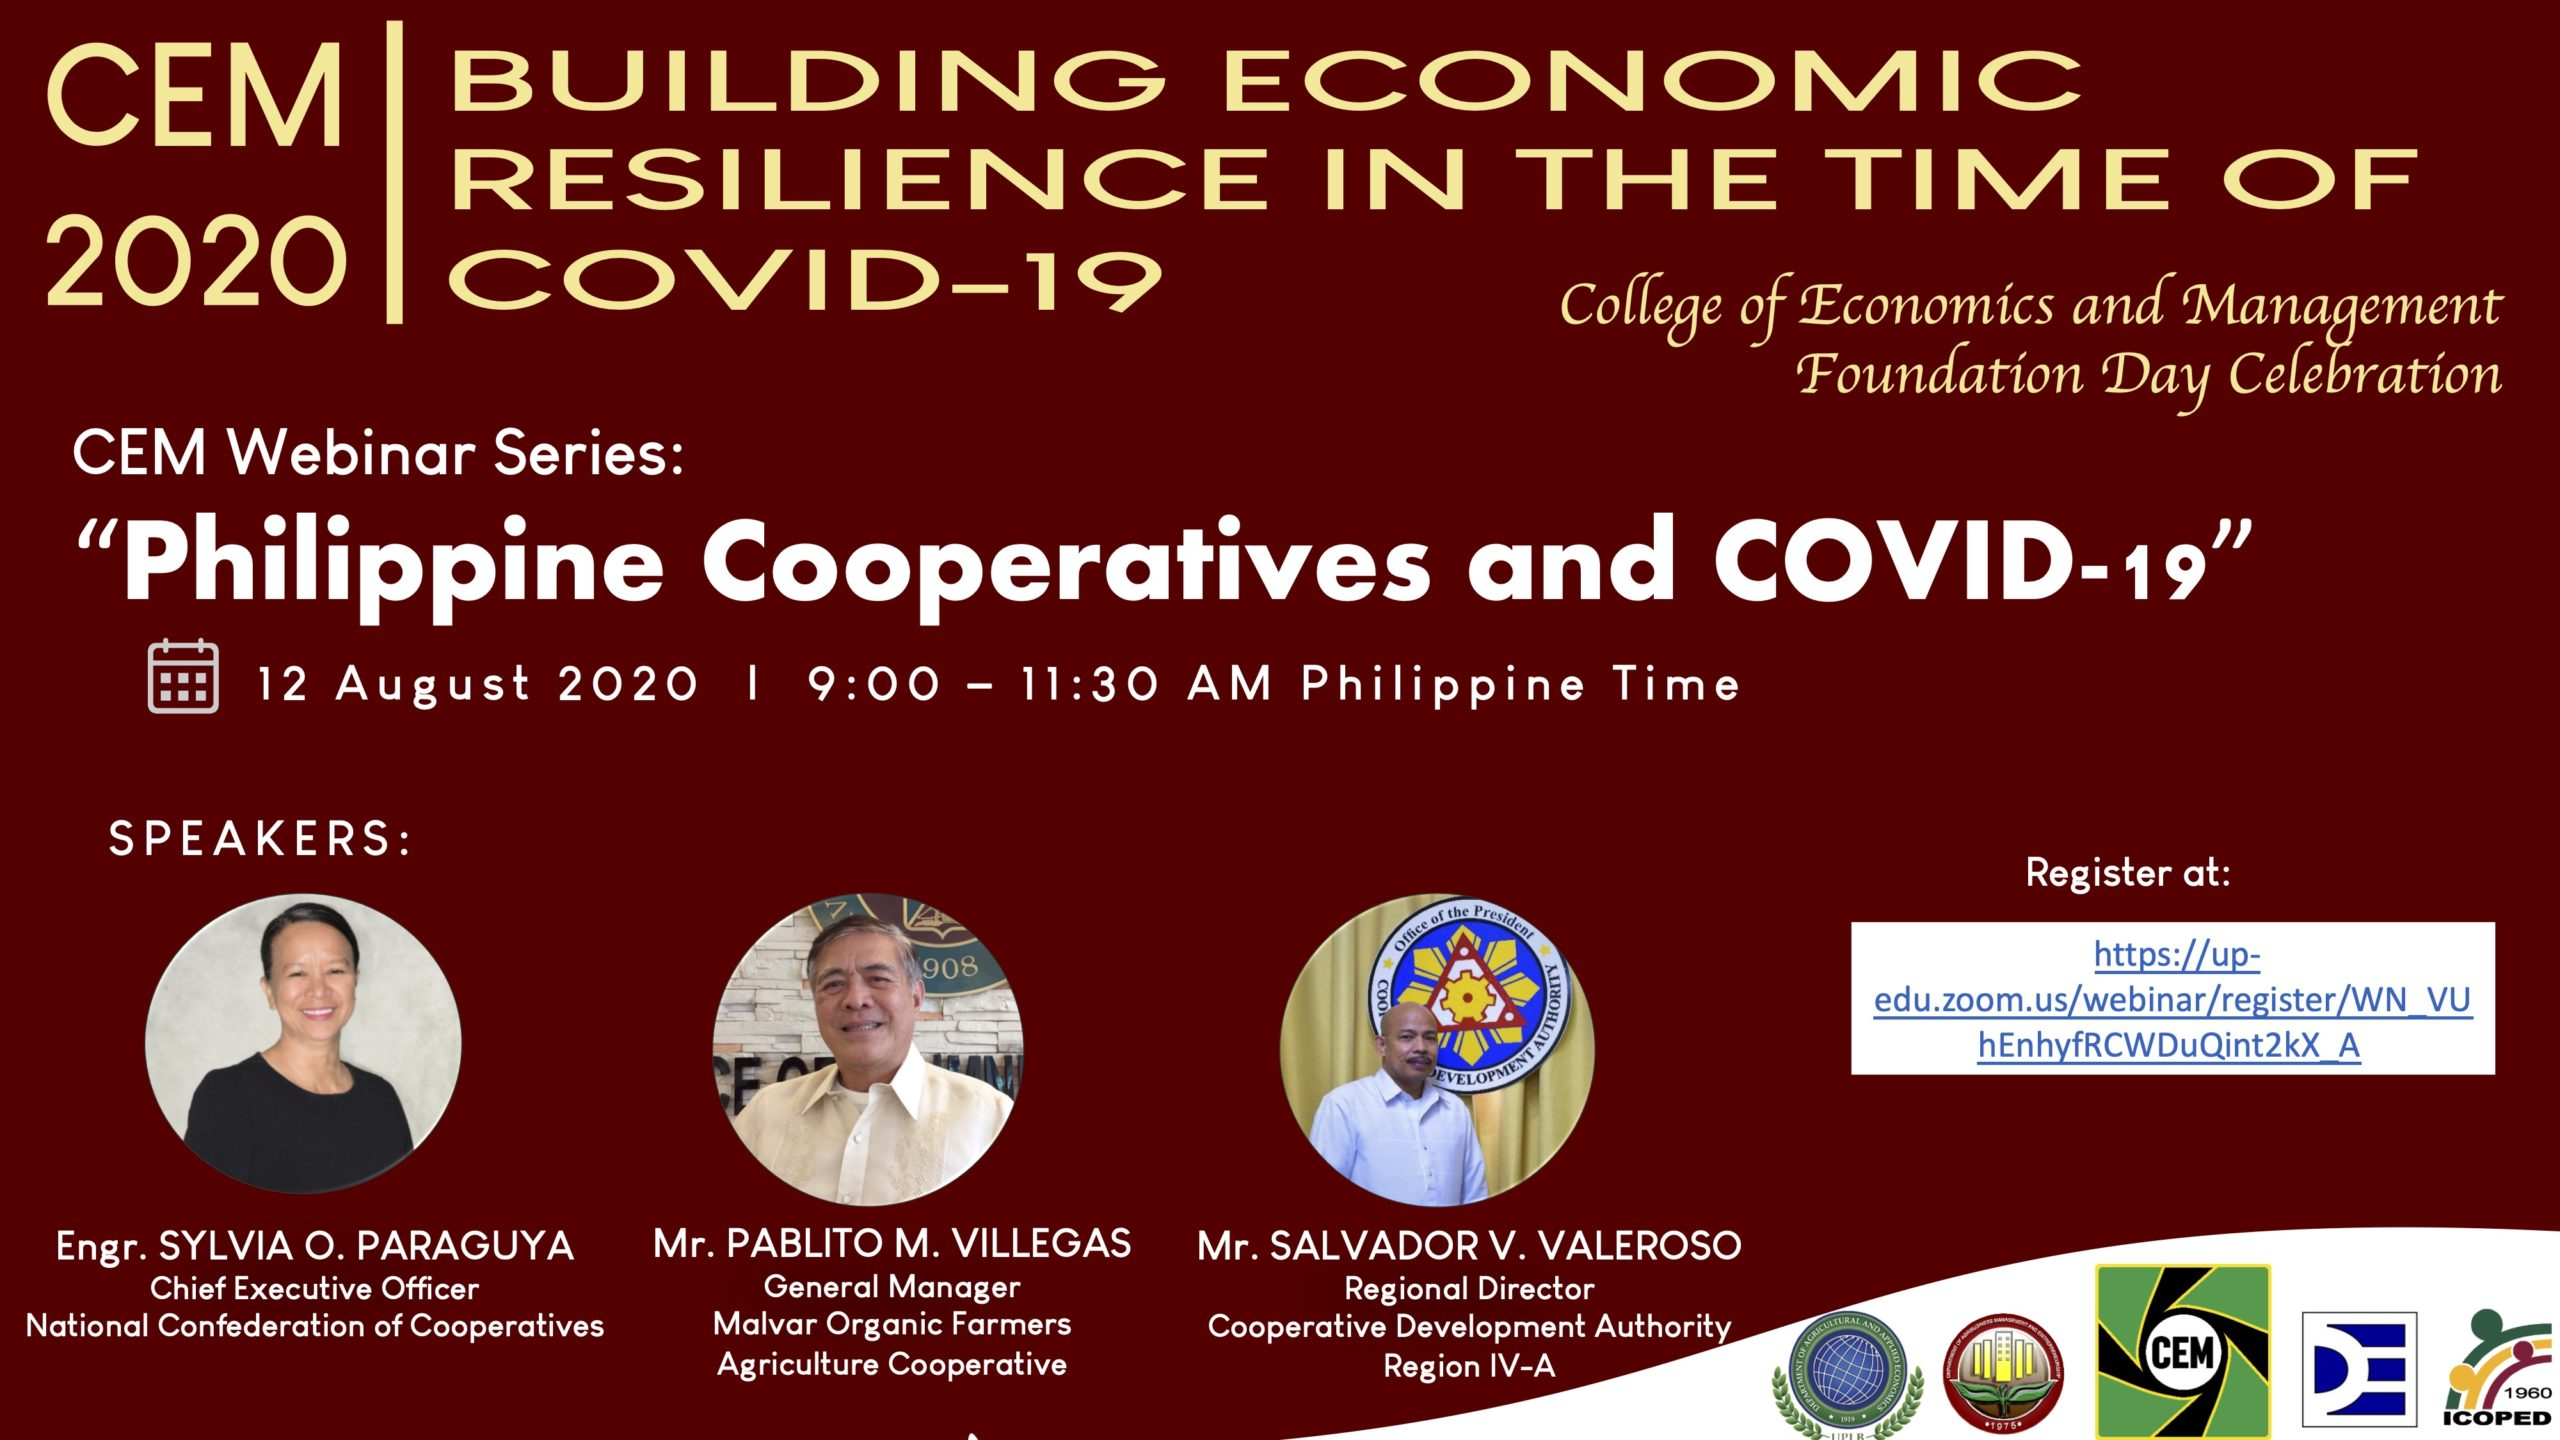 Philippine Cooperatives and COVID-19